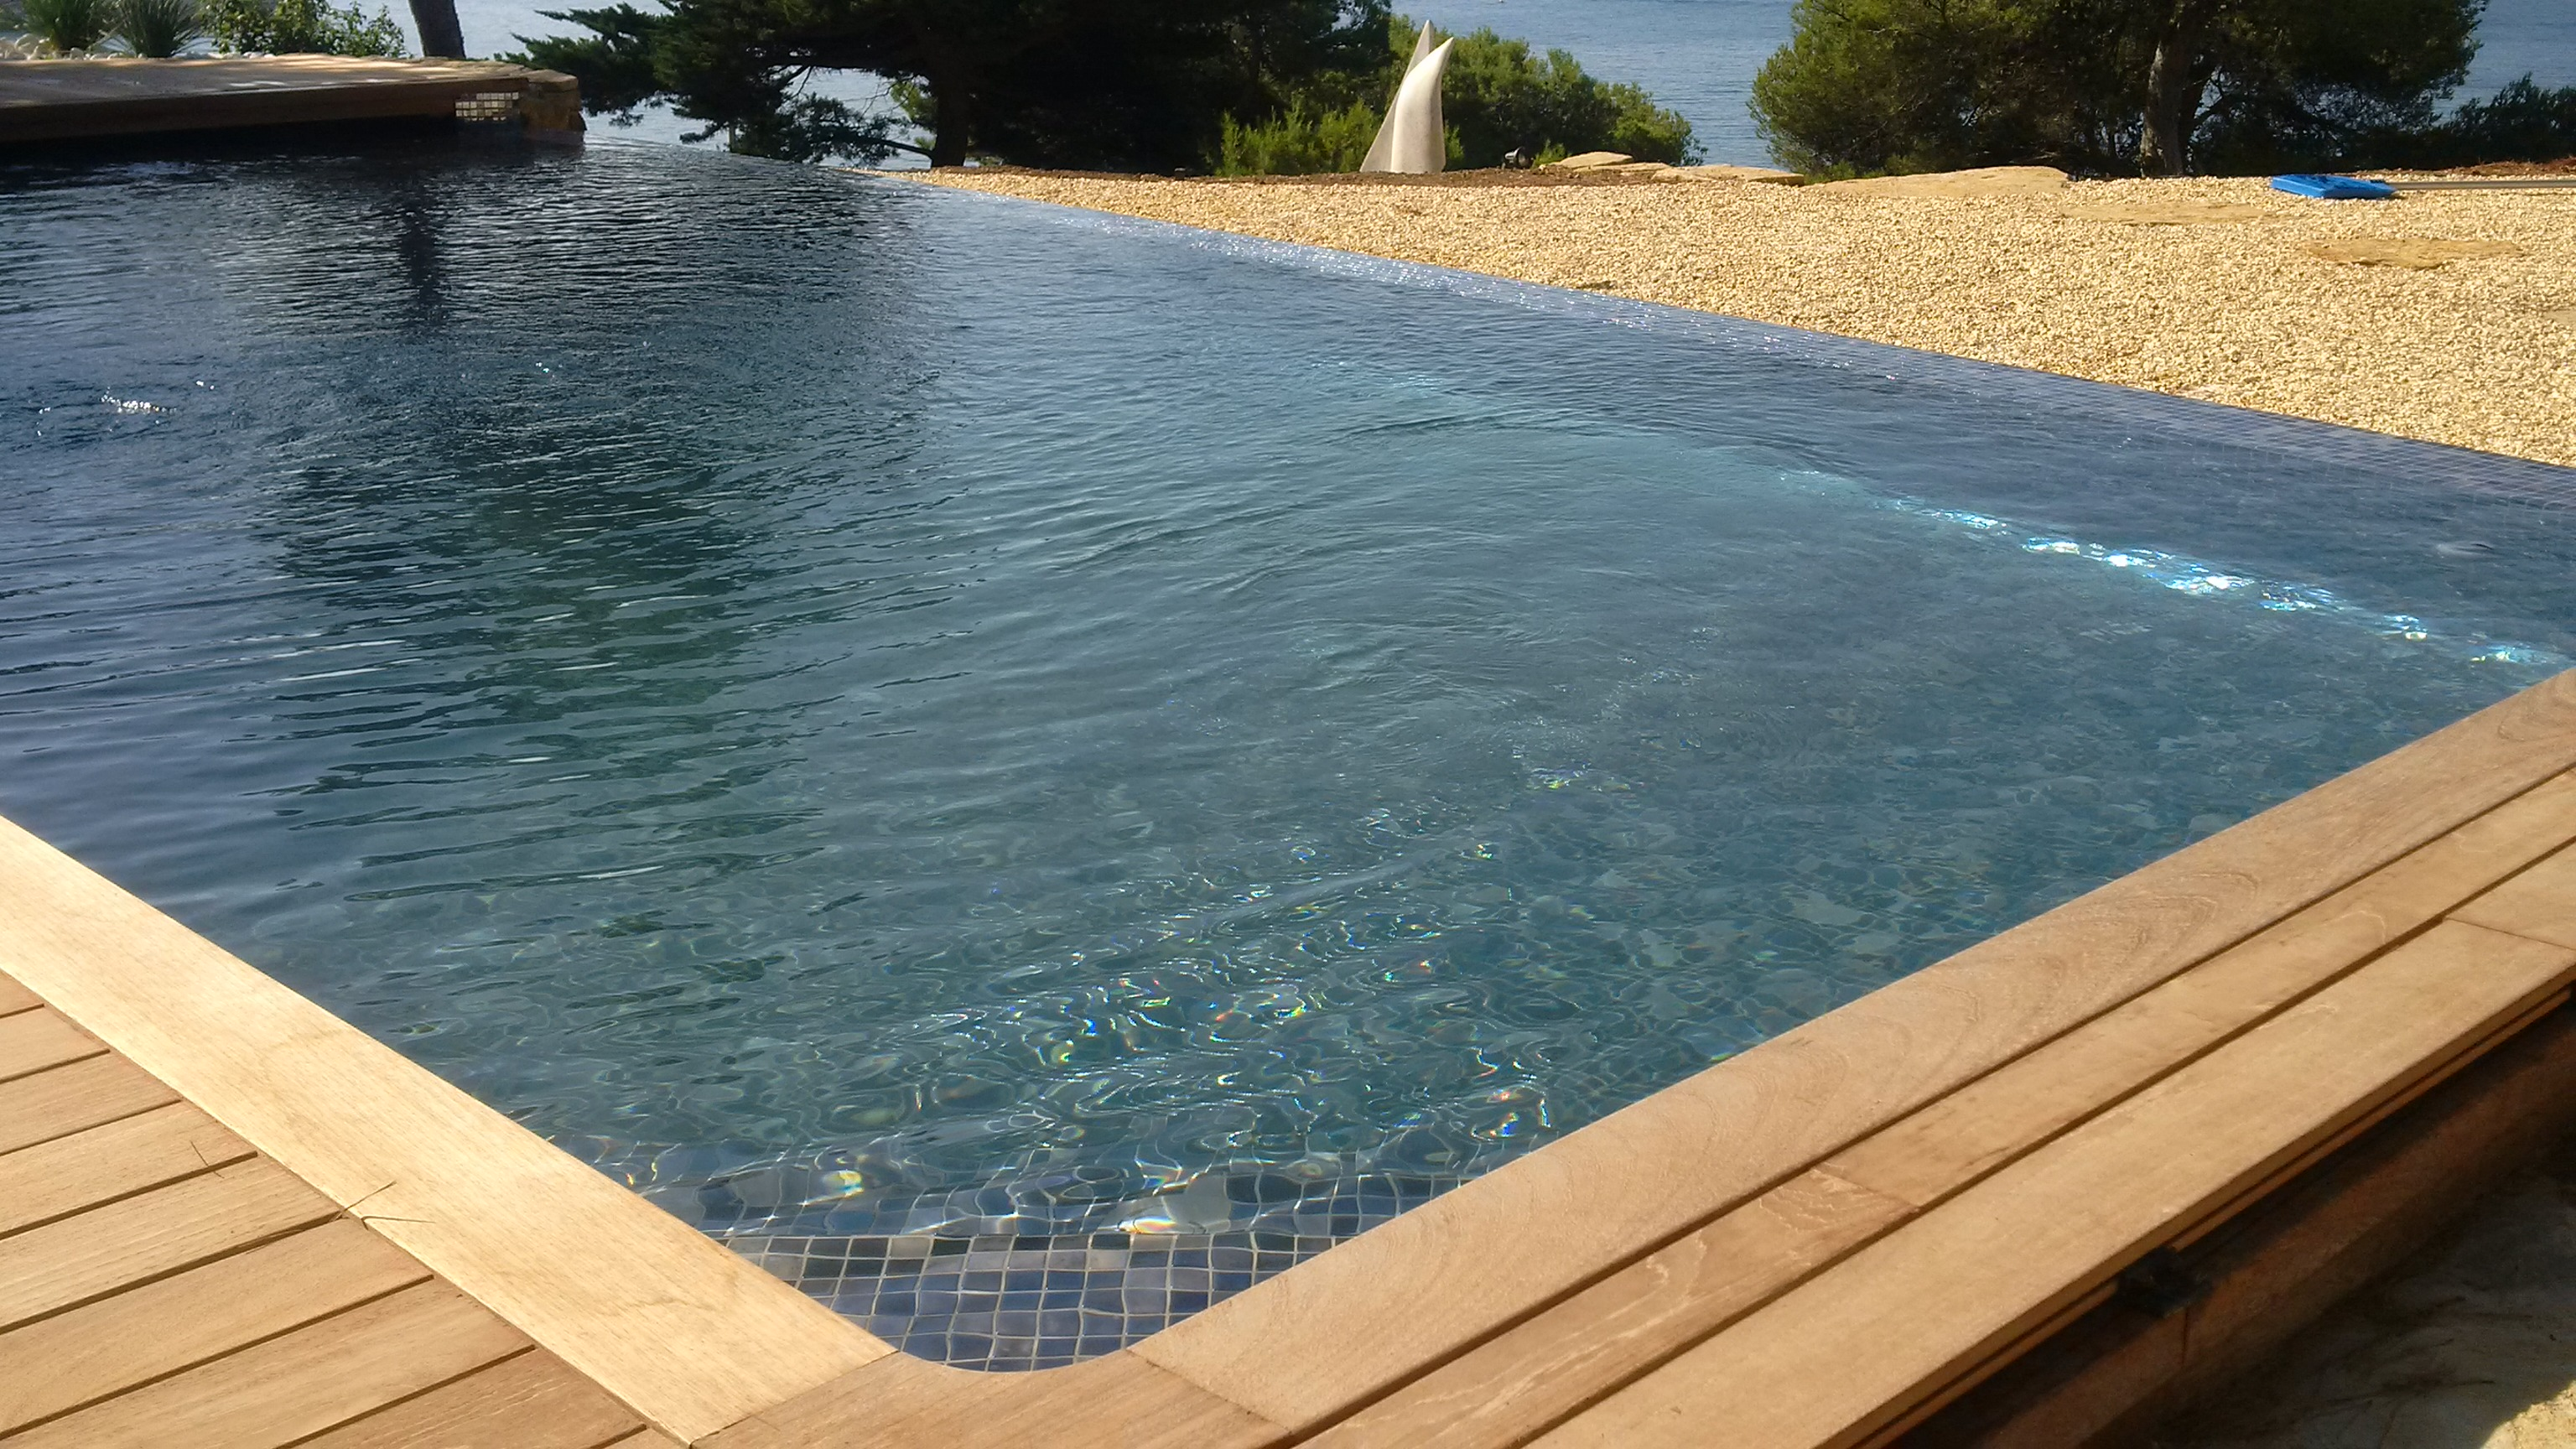 La piscine aquaset piscines traditionnelles brignoles for Terrasse piscine beton